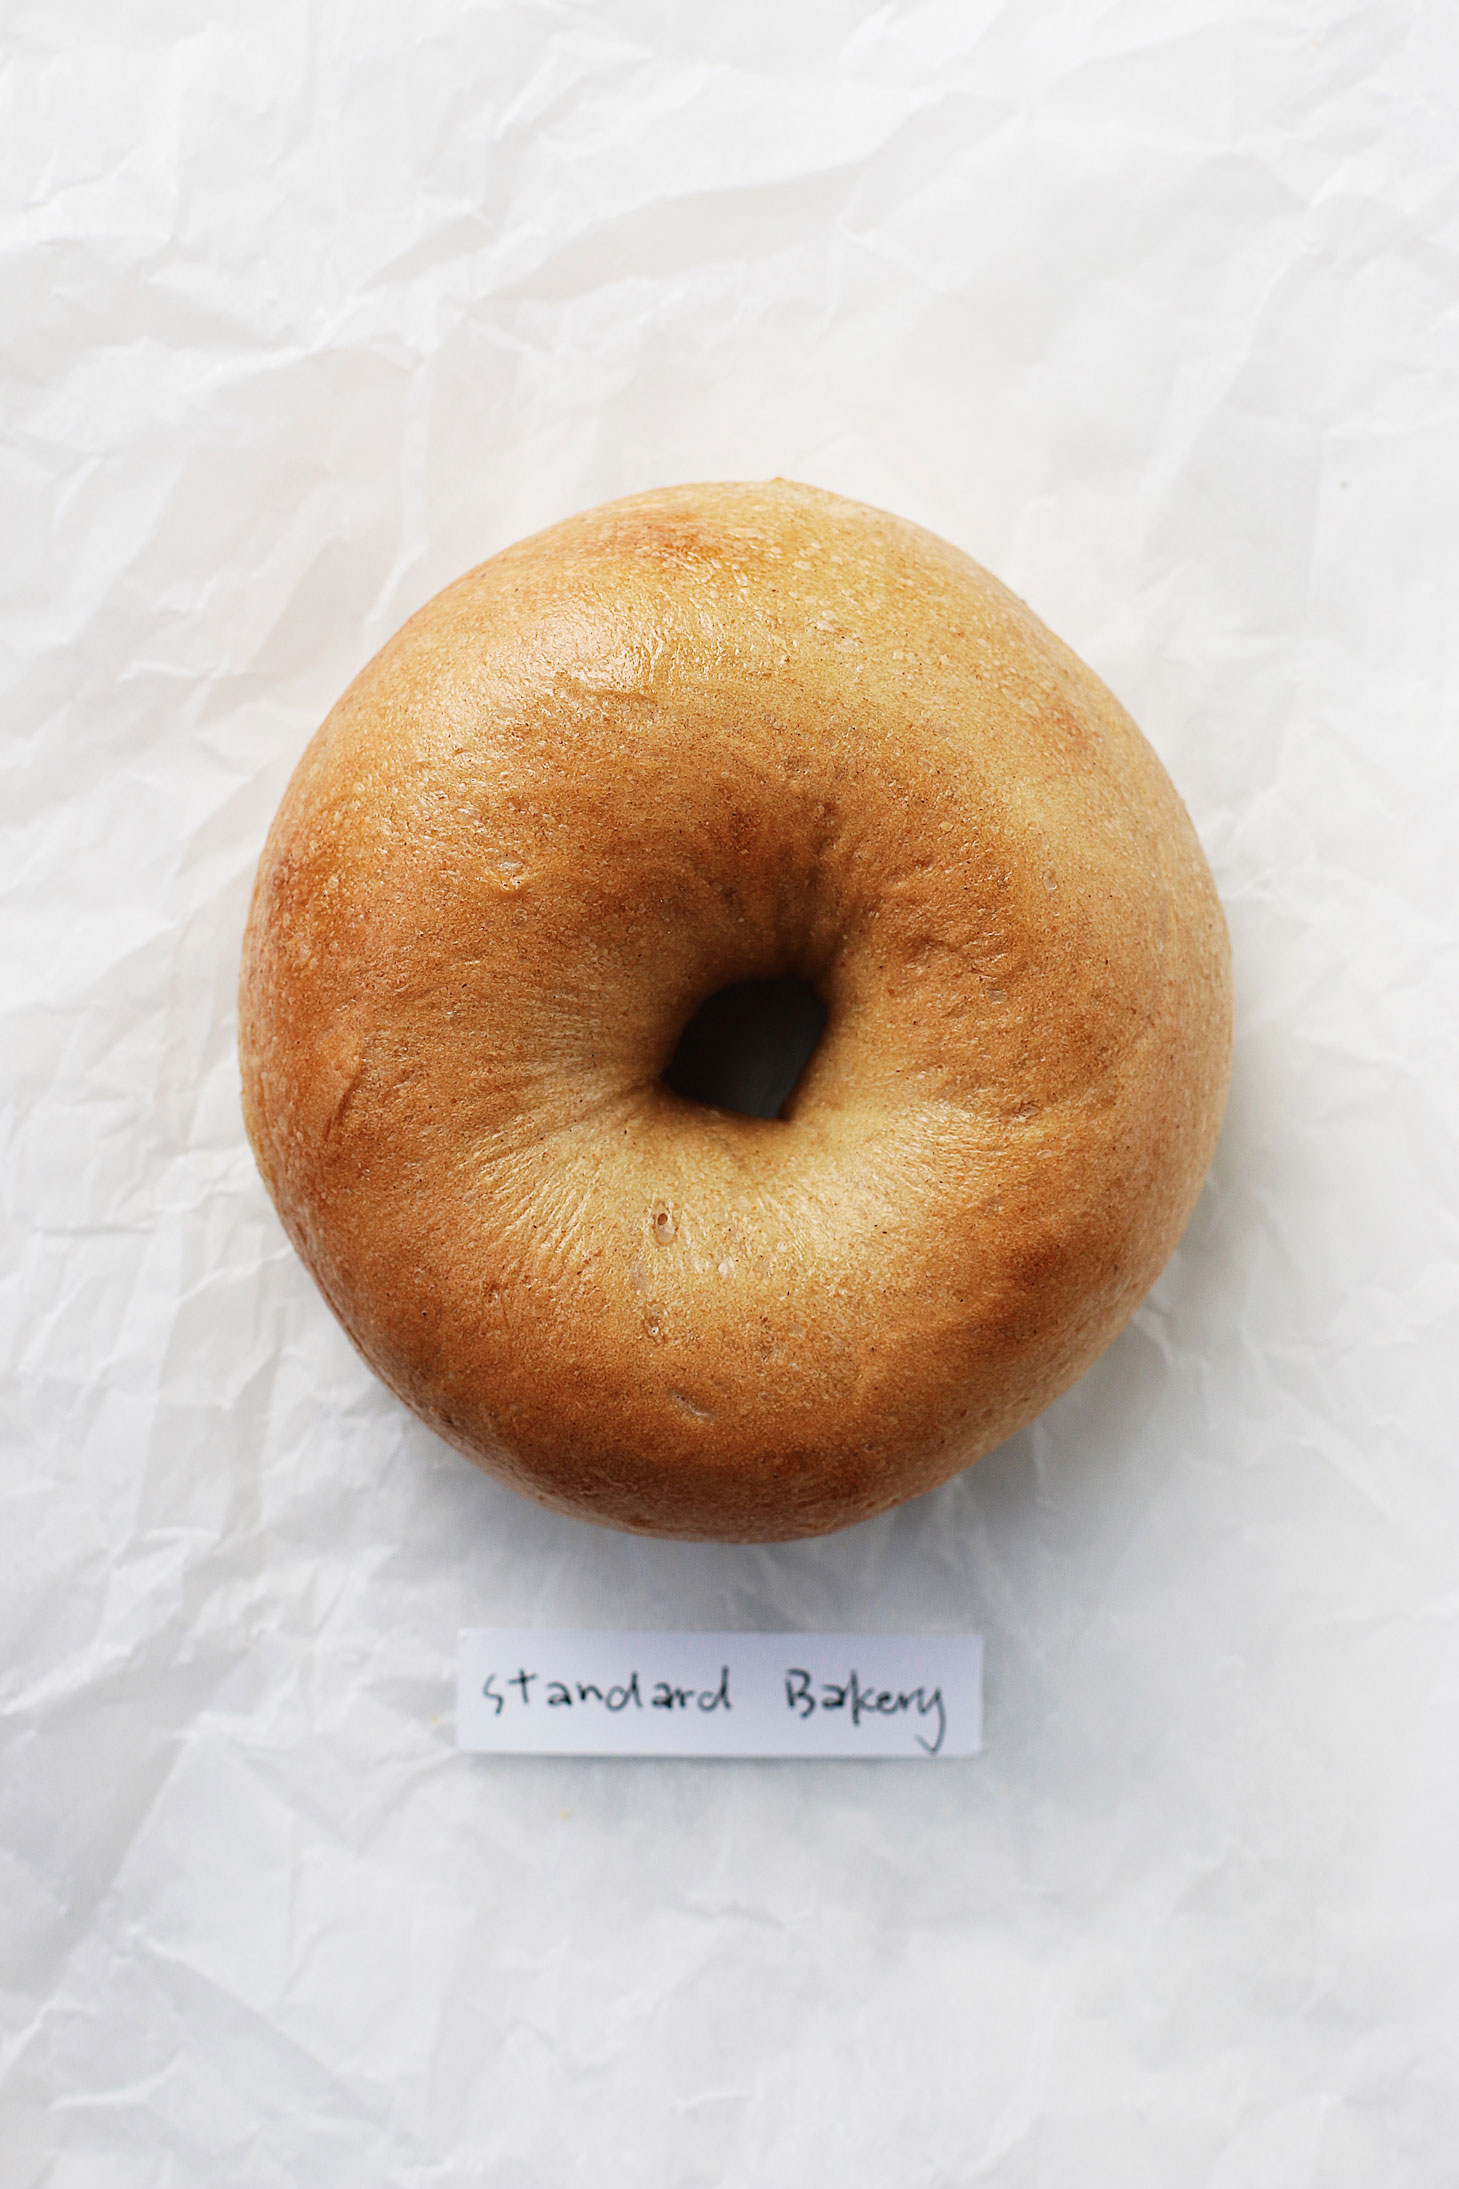 best-bagel-in-seattle-great-bagel-off-standard-bakery-plain